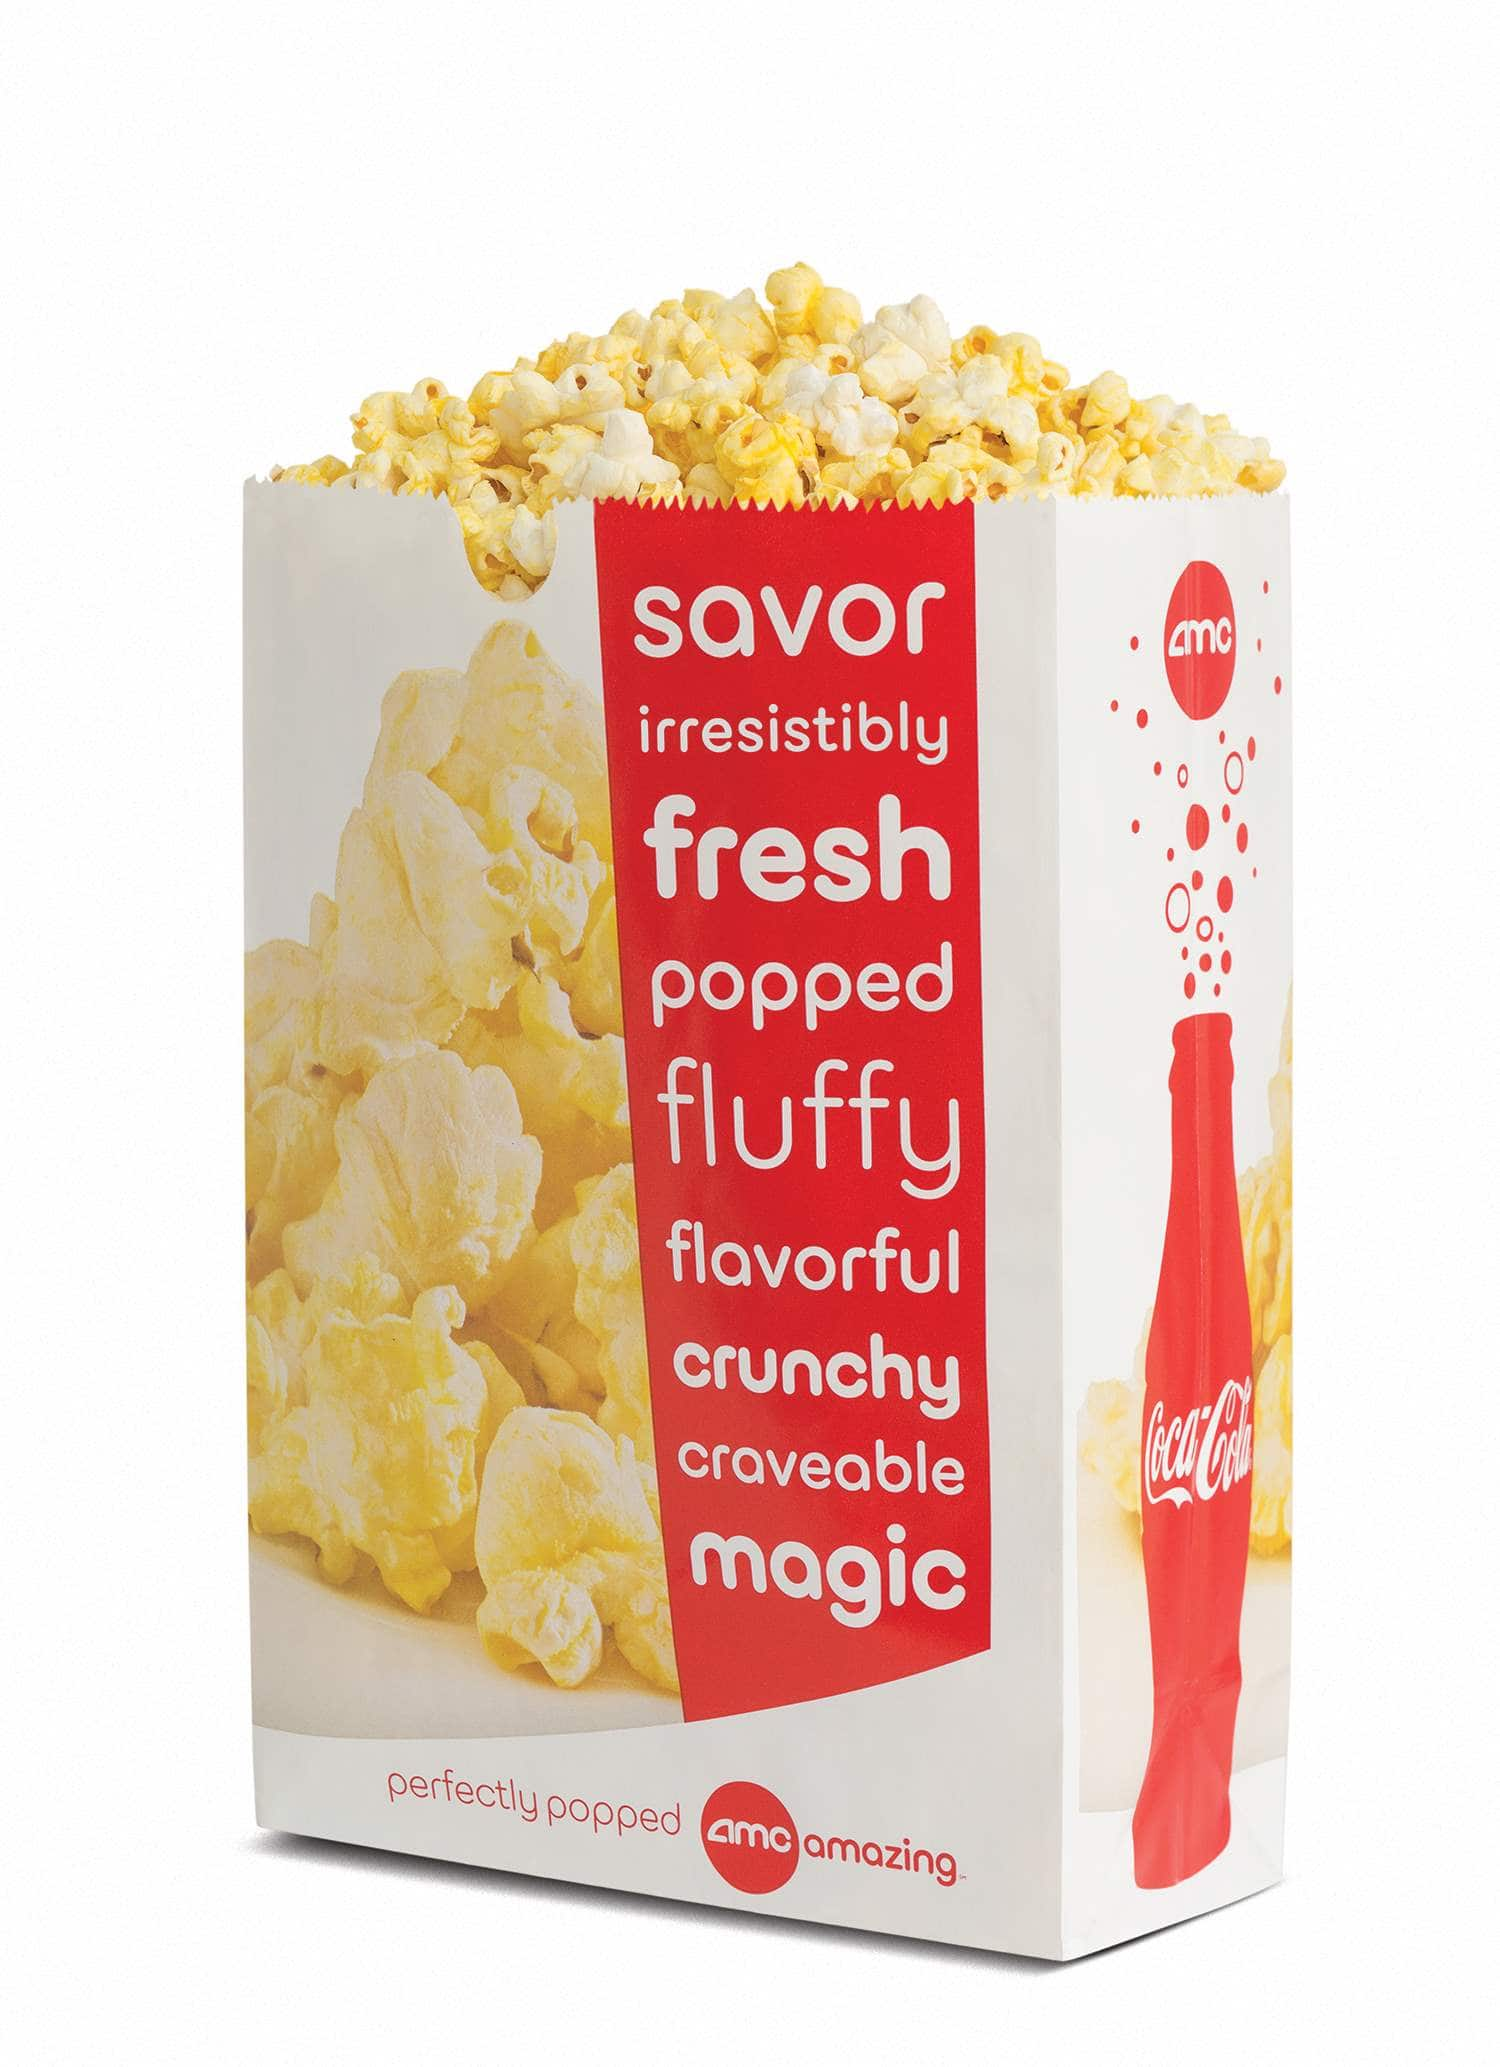 AMC Popcorn prices start at $6 for small and go up to $8 for large popcorn. Guests can also order nachos, drinks, candy, and hot dogs. Certain locations, especially the new dine-in movie theaters, offer additional snacks and food items such pizza, French fries, mozzarella sticks, sandwiches, and additional items that cost between $ and $ per item or meal.